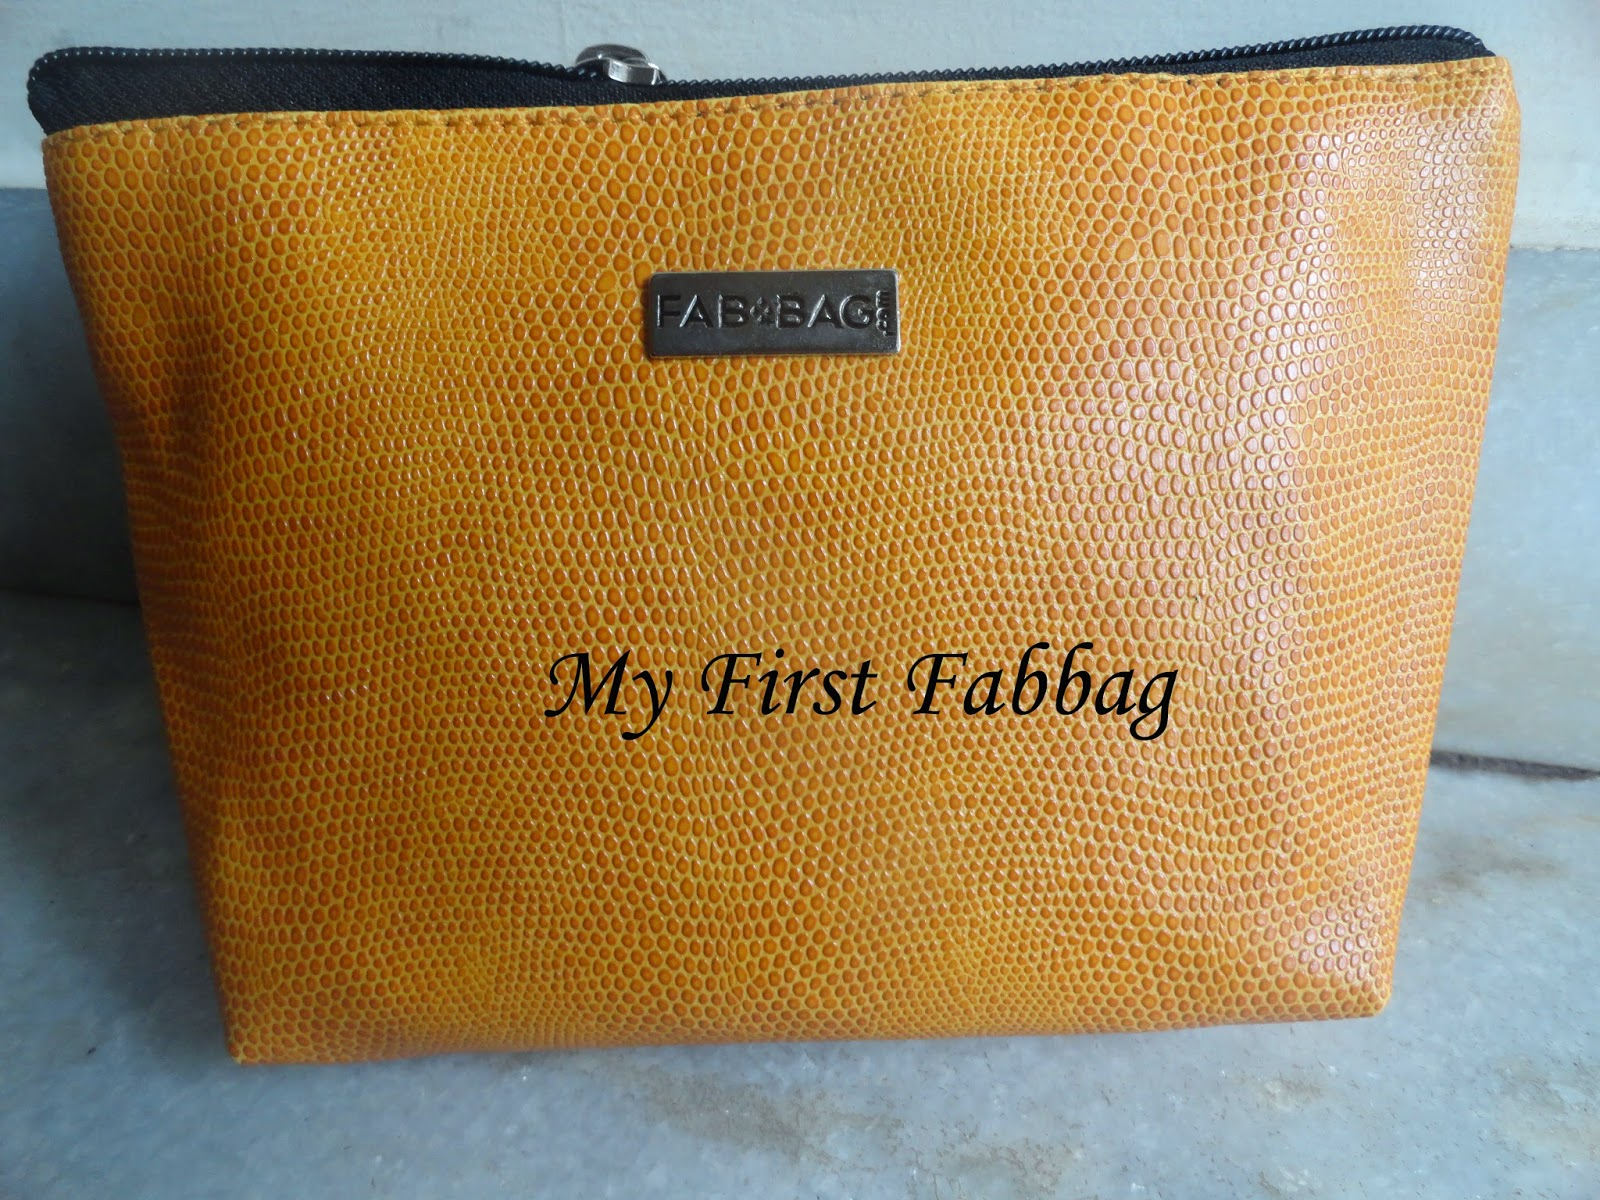 My first ever Fabbag! Lets see what's in my Fabbag image